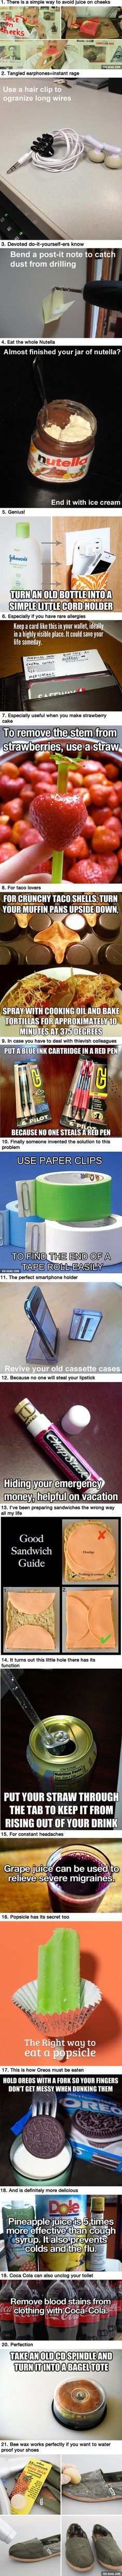 21 Life Hacks That Are Nice To